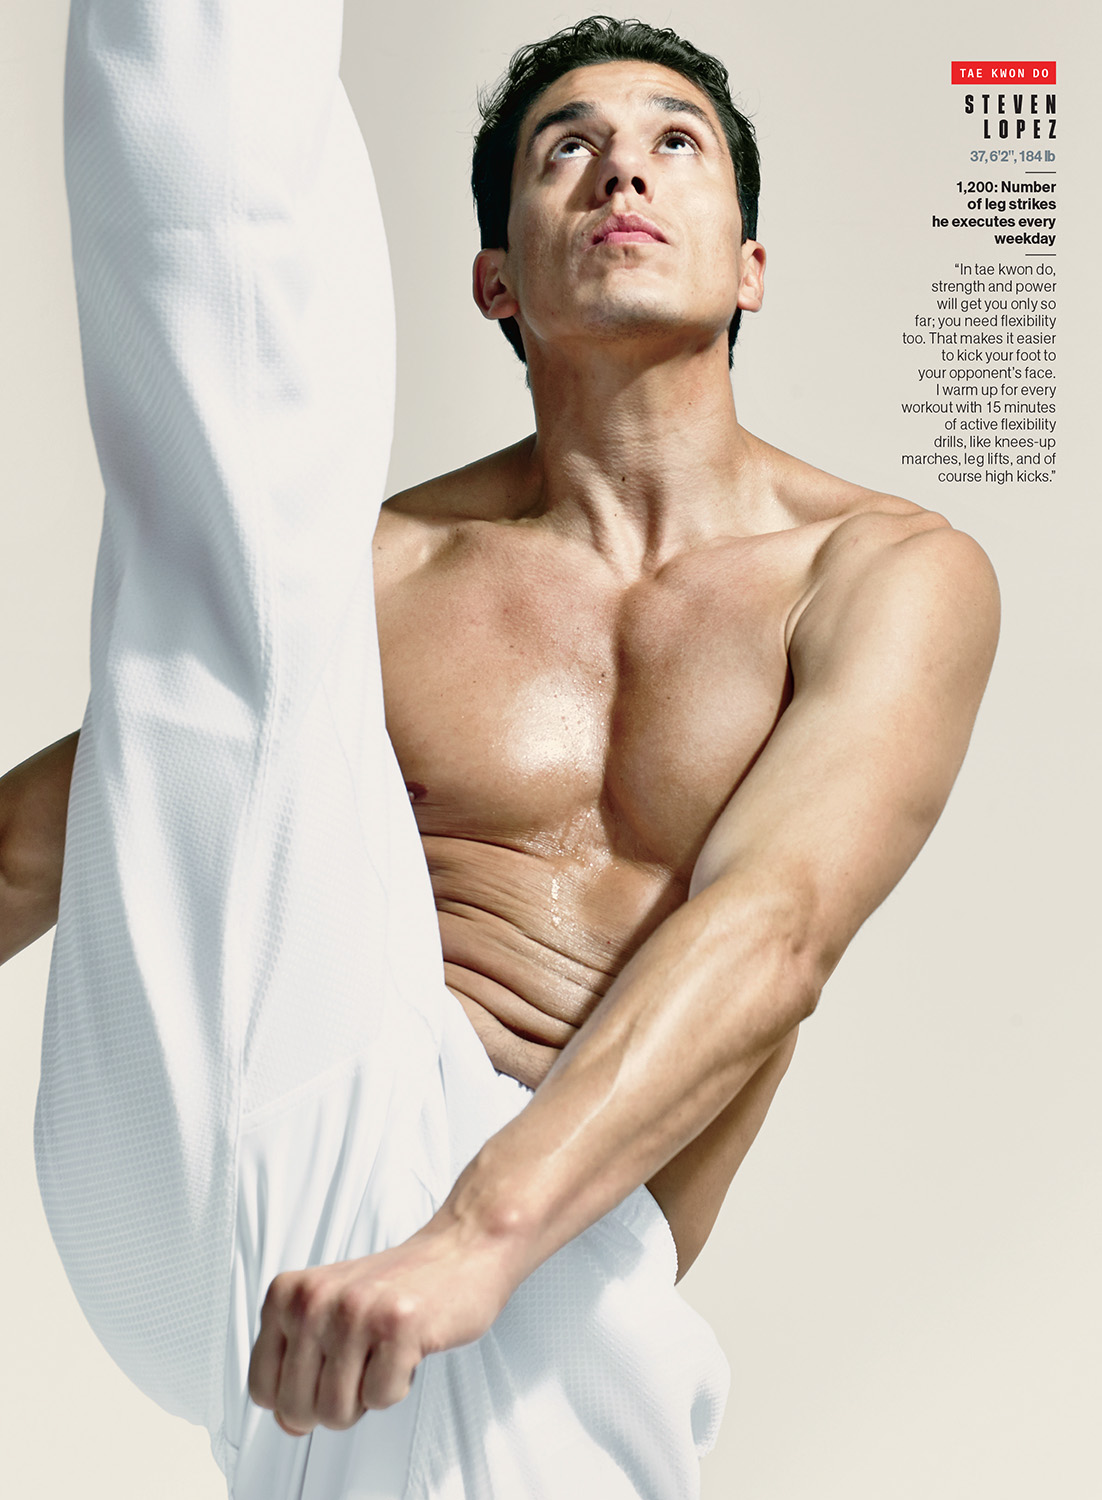 ac_MensHealth_PeterHapak_JulAug16_Layout_06.jpg